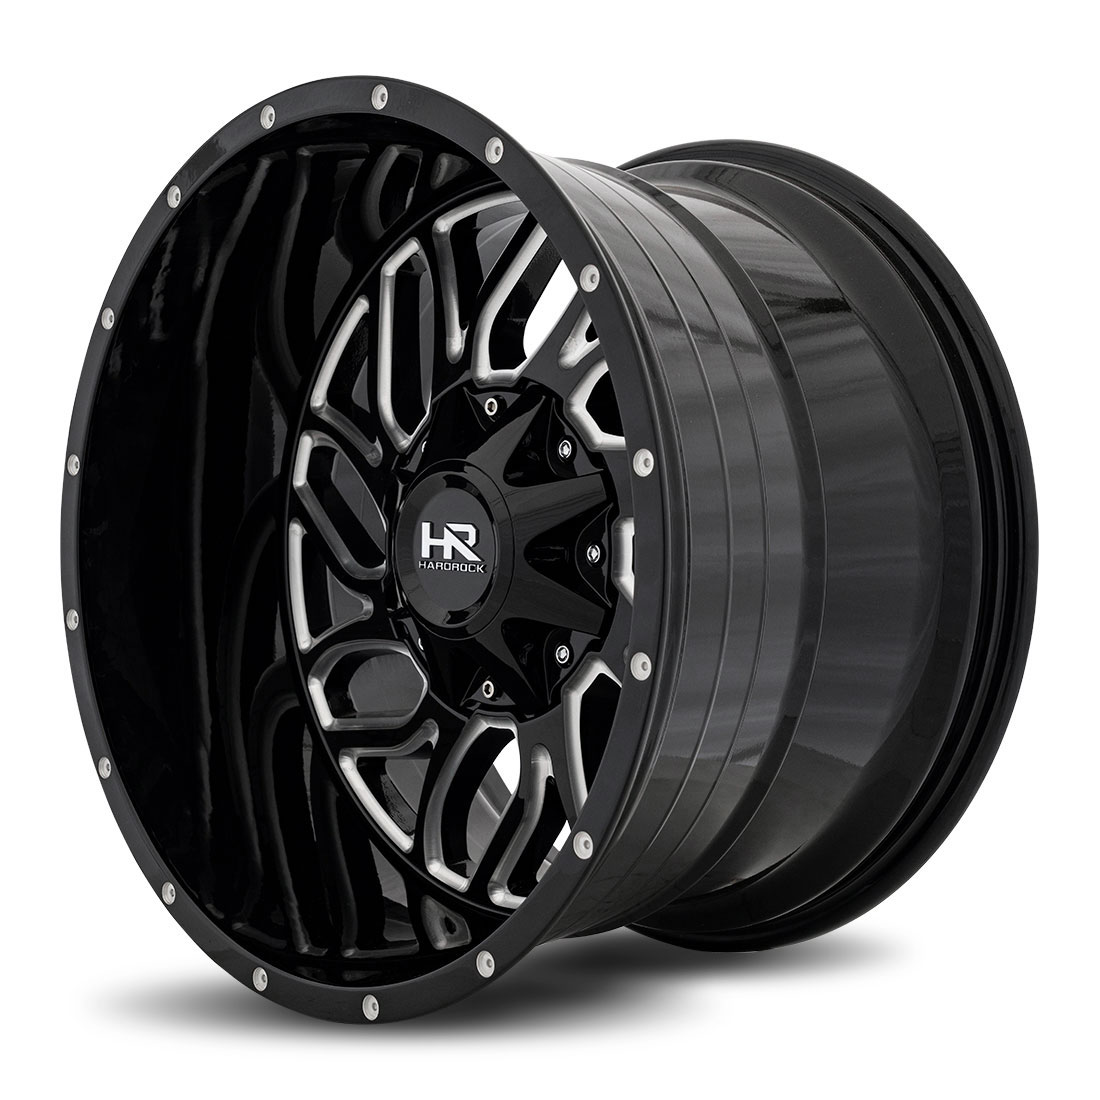 Hardrock Offroad Wheels H707 Destroyer - Gloss Black Milled - 20x12